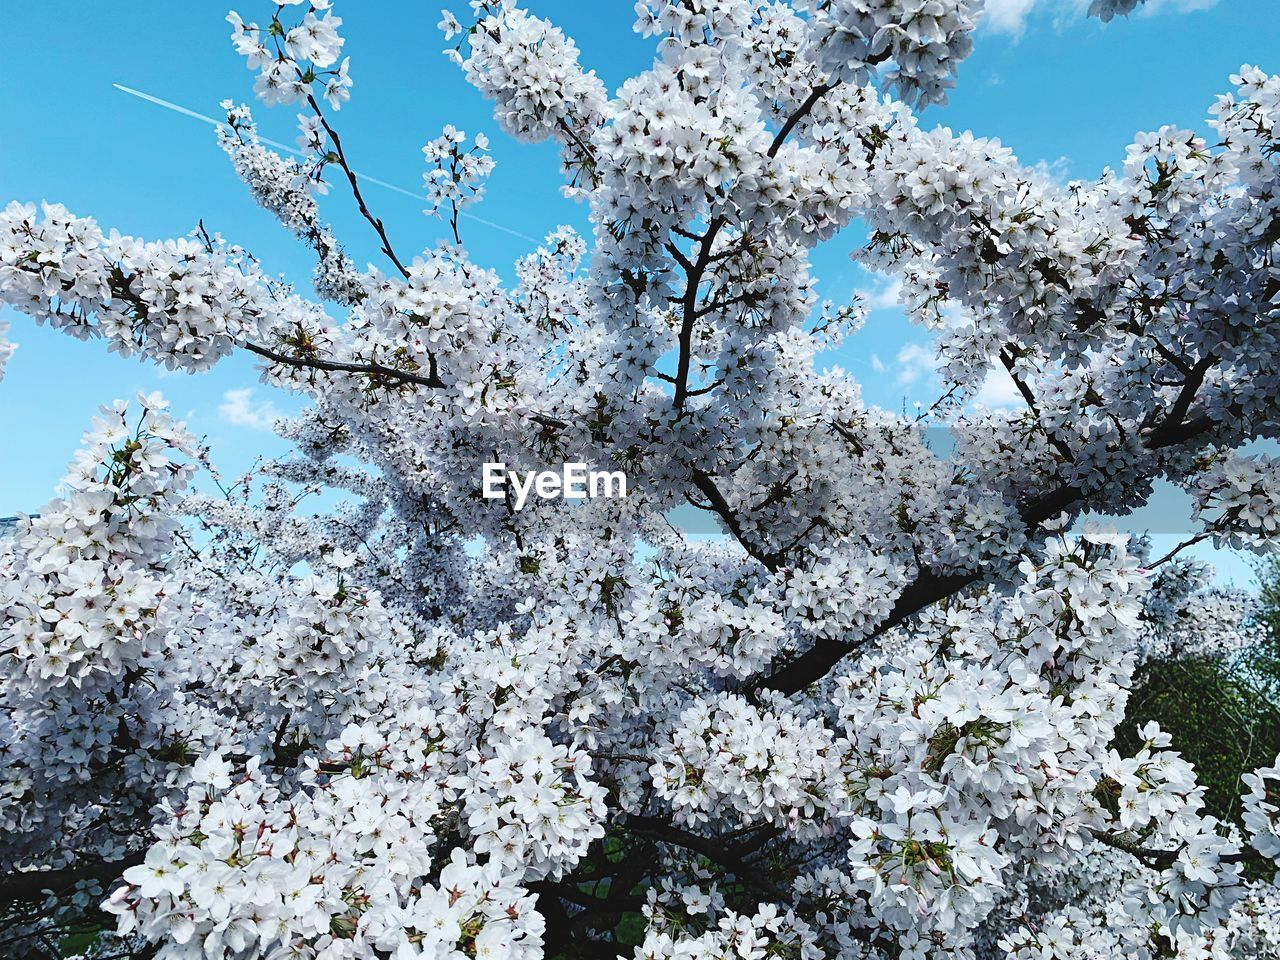 flowering plant, plant, flower, fragility, beauty in nature, blossom, growth, springtime, vulnerability, low angle view, tree, day, nature, freshness, branch, white color, no people, sky, cherry blossom, tranquility, cherry tree, outdoors, spring, flower head, bunch of flowers